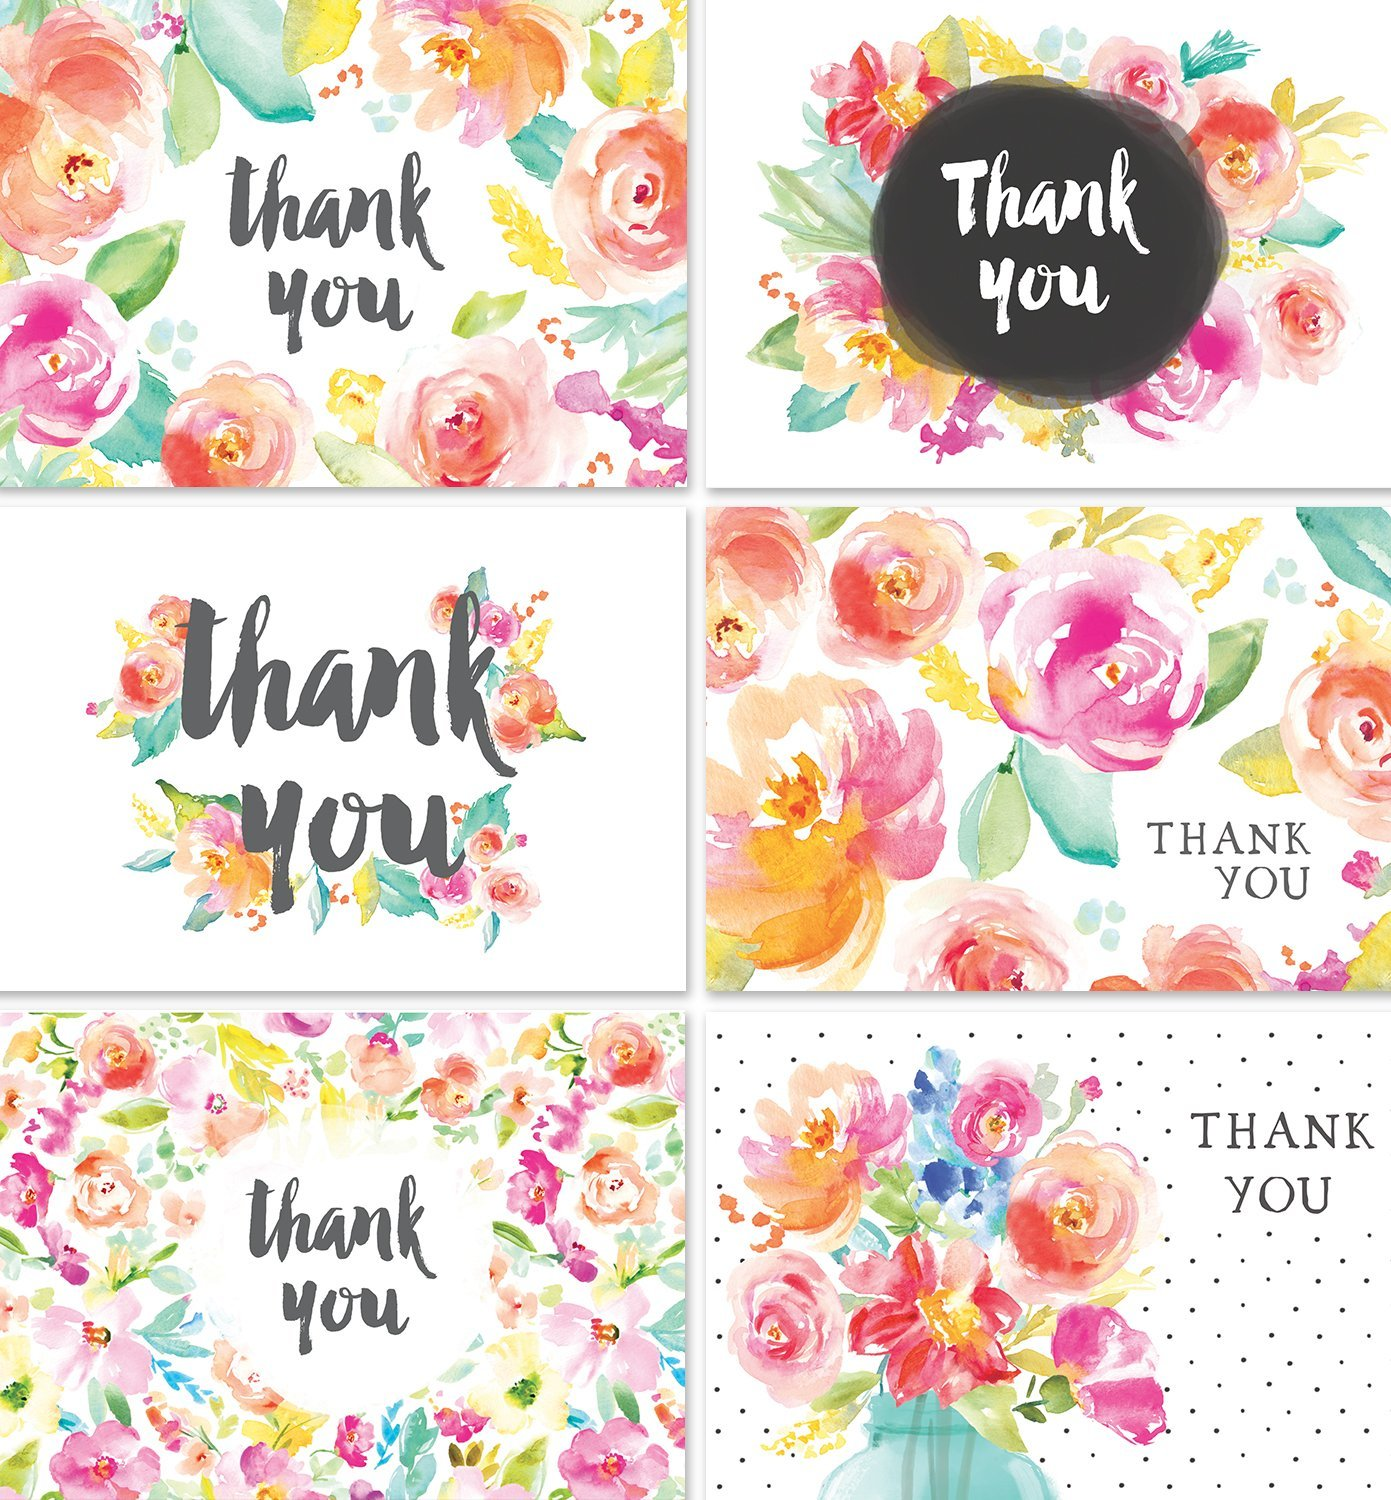 Thank You Cards Bulk Set | 36 Floral Thank You Notes with Envelopes | Blank Inside | Perfect for Baby Showers, Weddings, Bridal Showers, Women, and Business | By Angie Makes